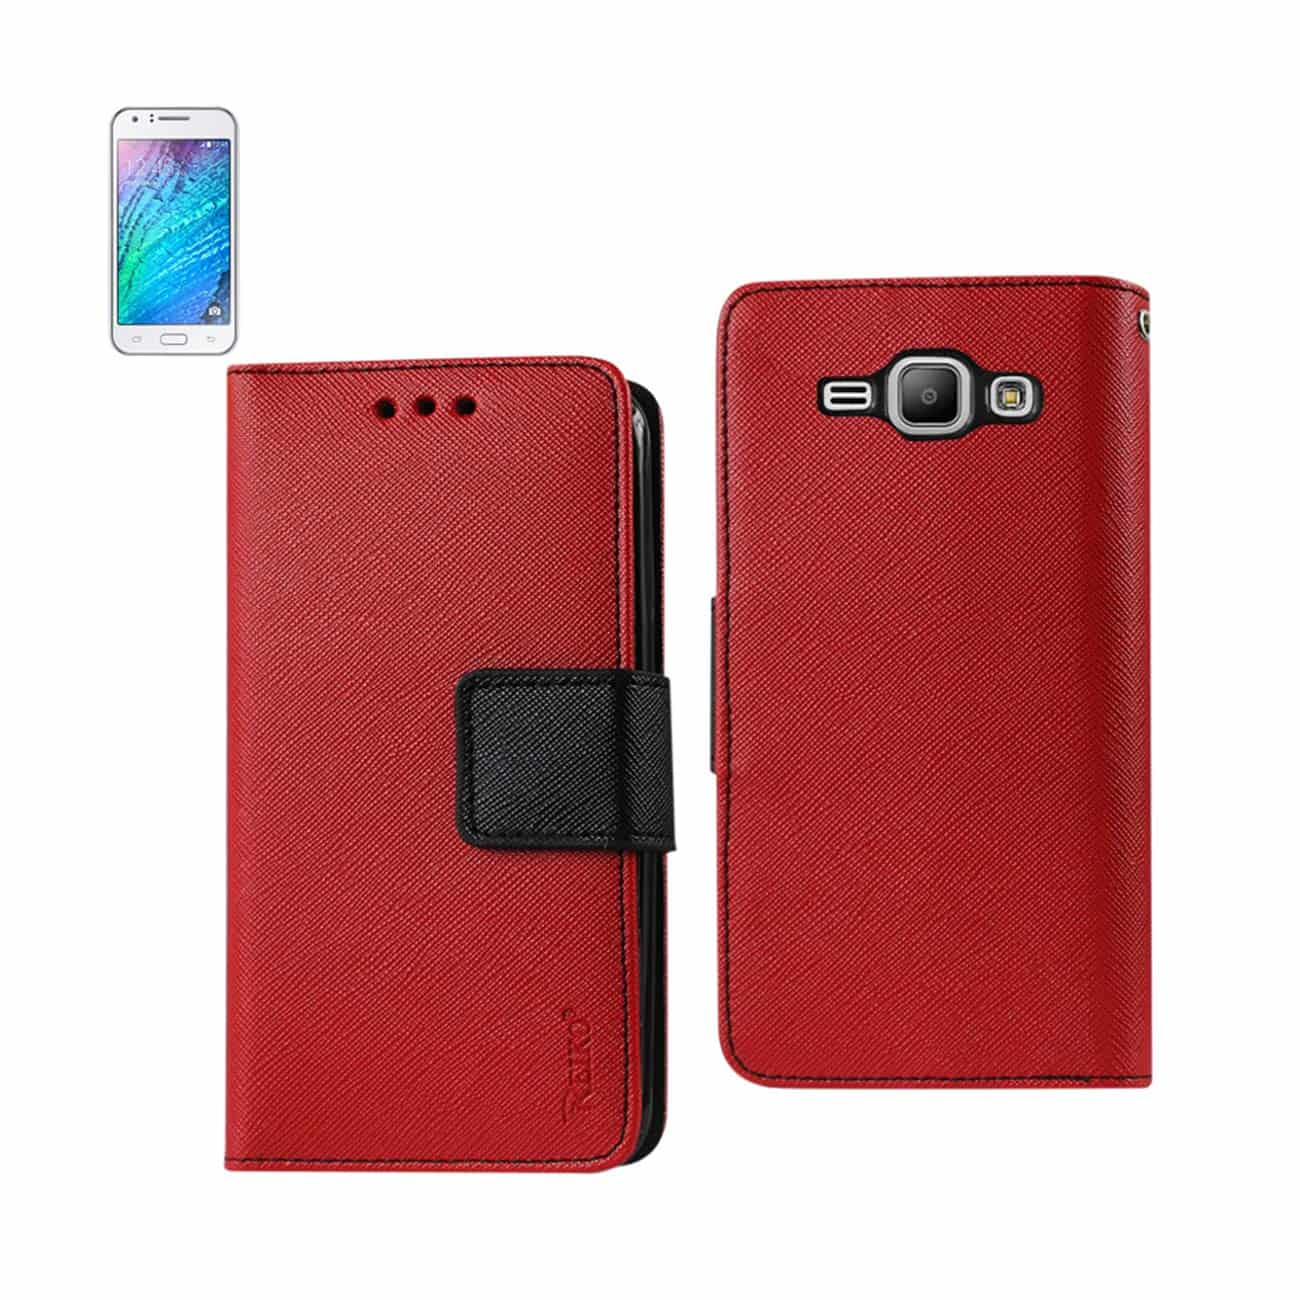 SAMSUNG GALAXY J1 3-IN-1 WALLET CASE IN RED